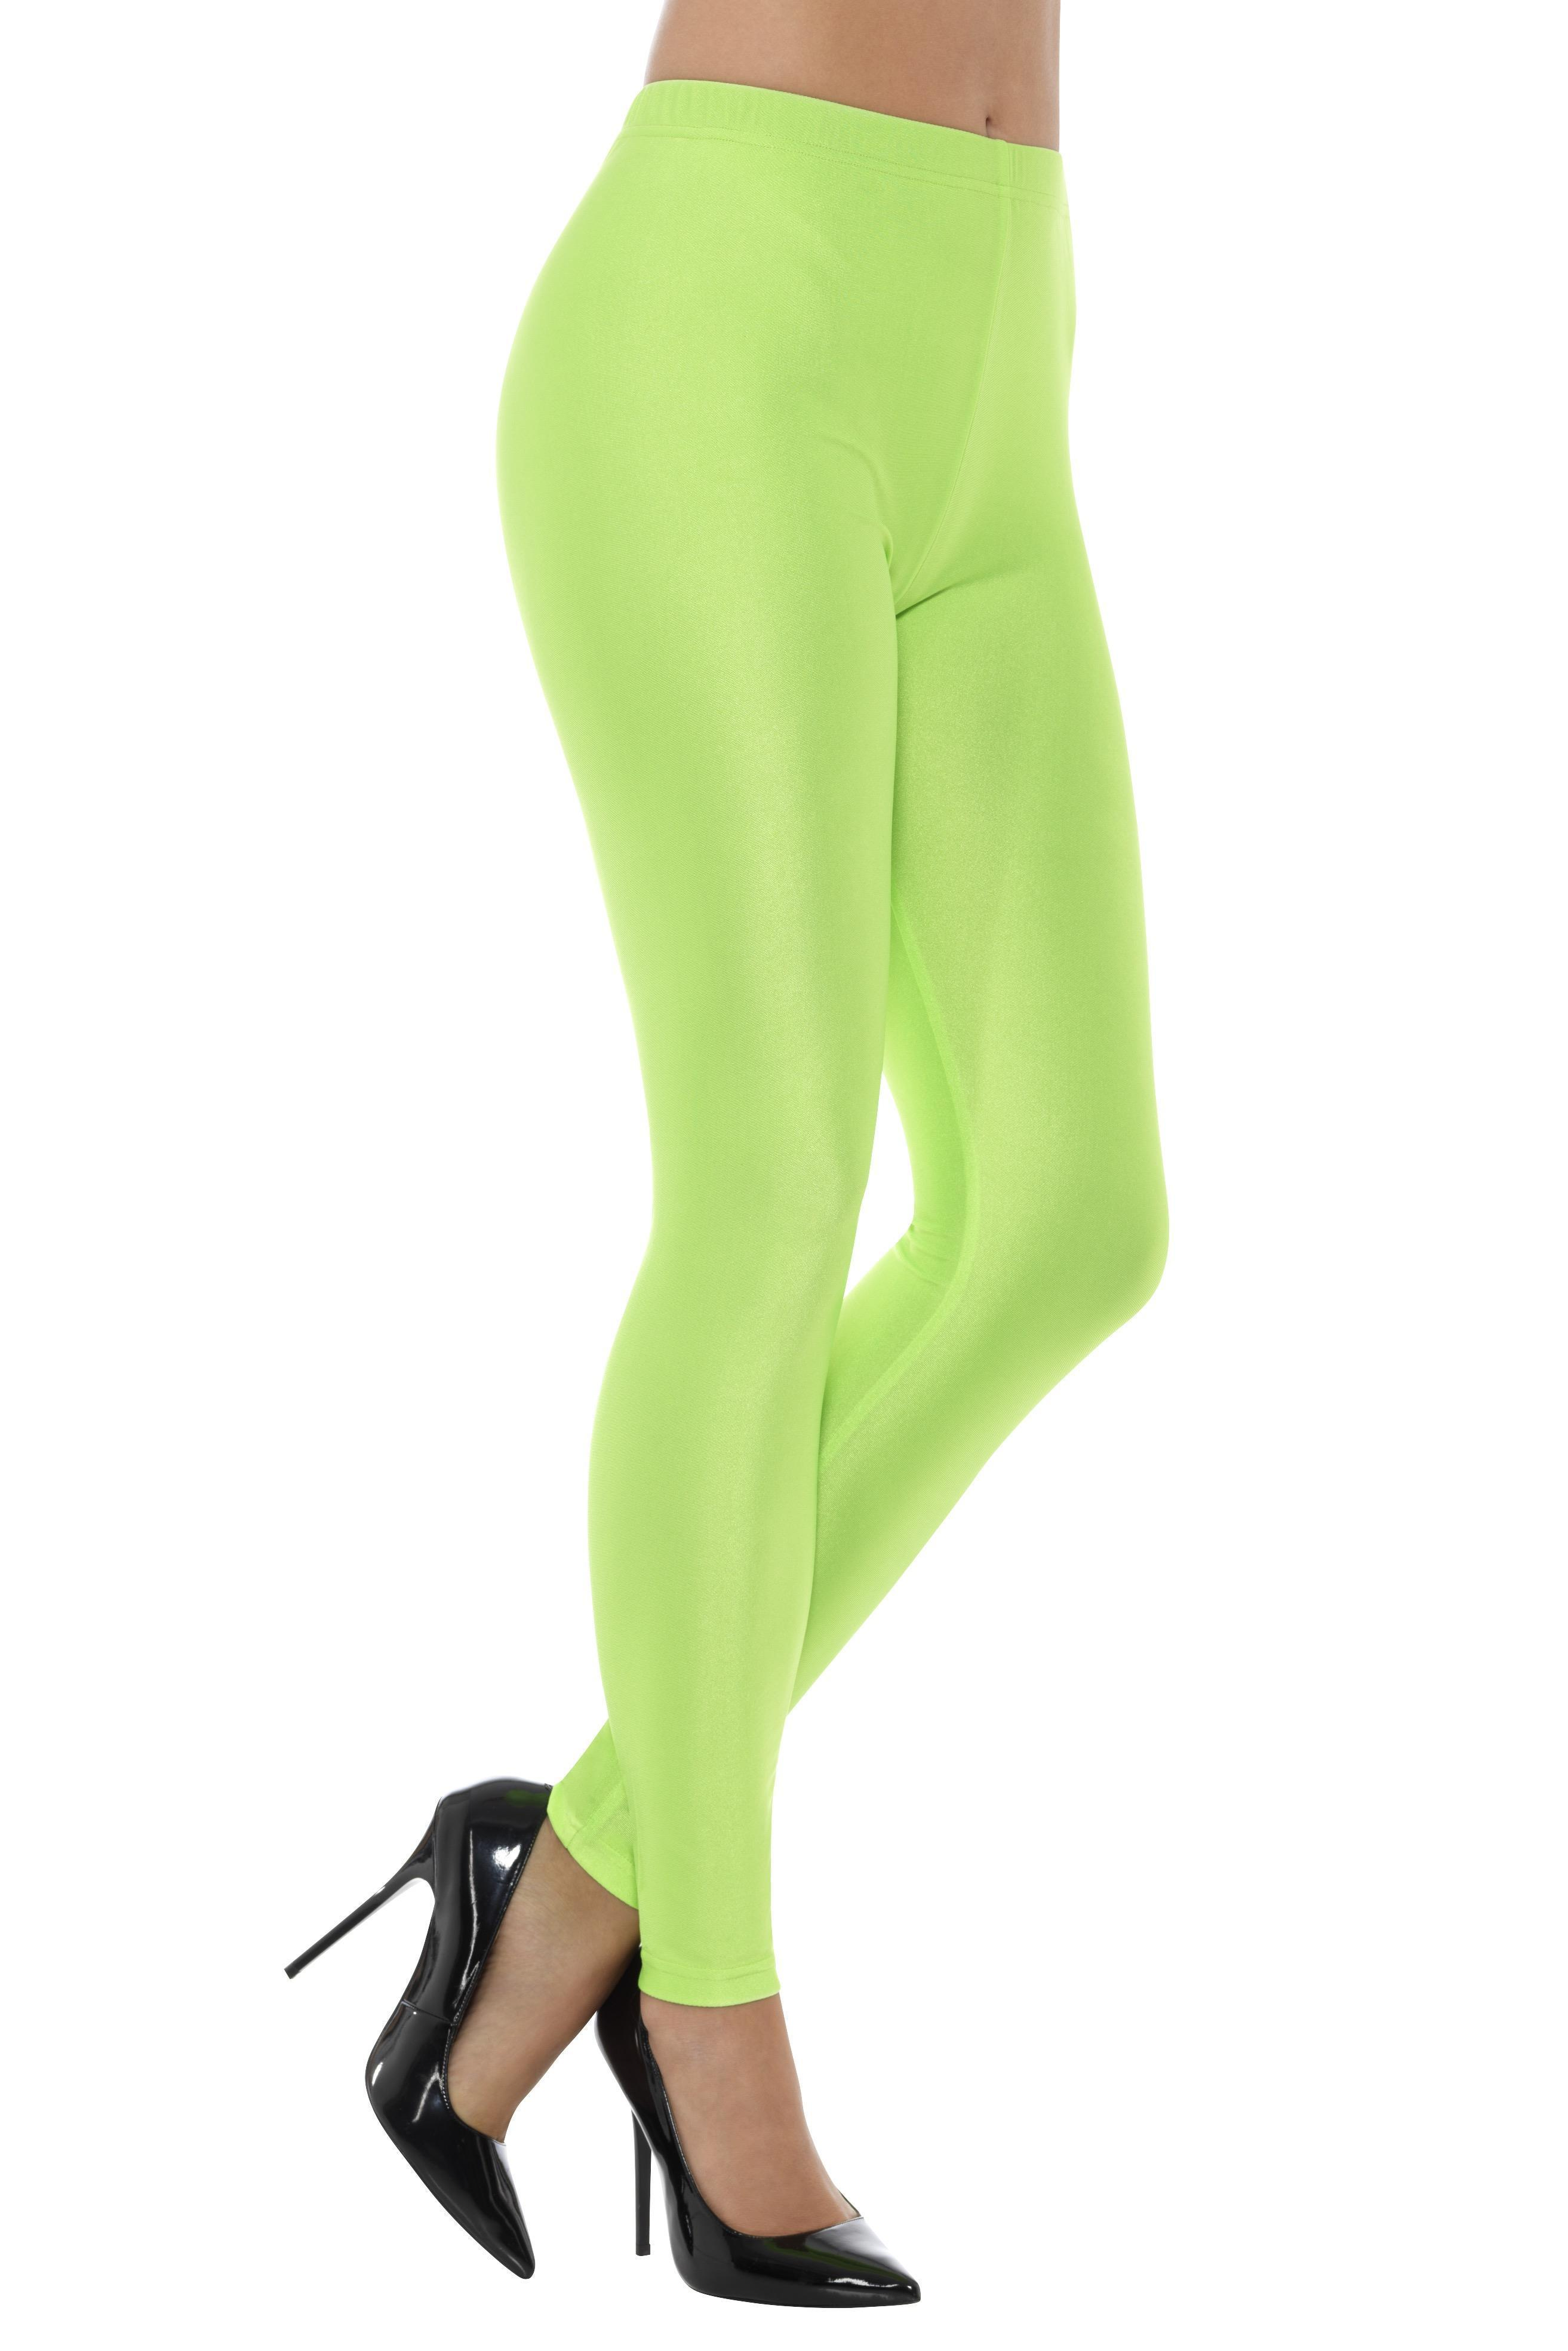 Spandex Disco Leggings Green